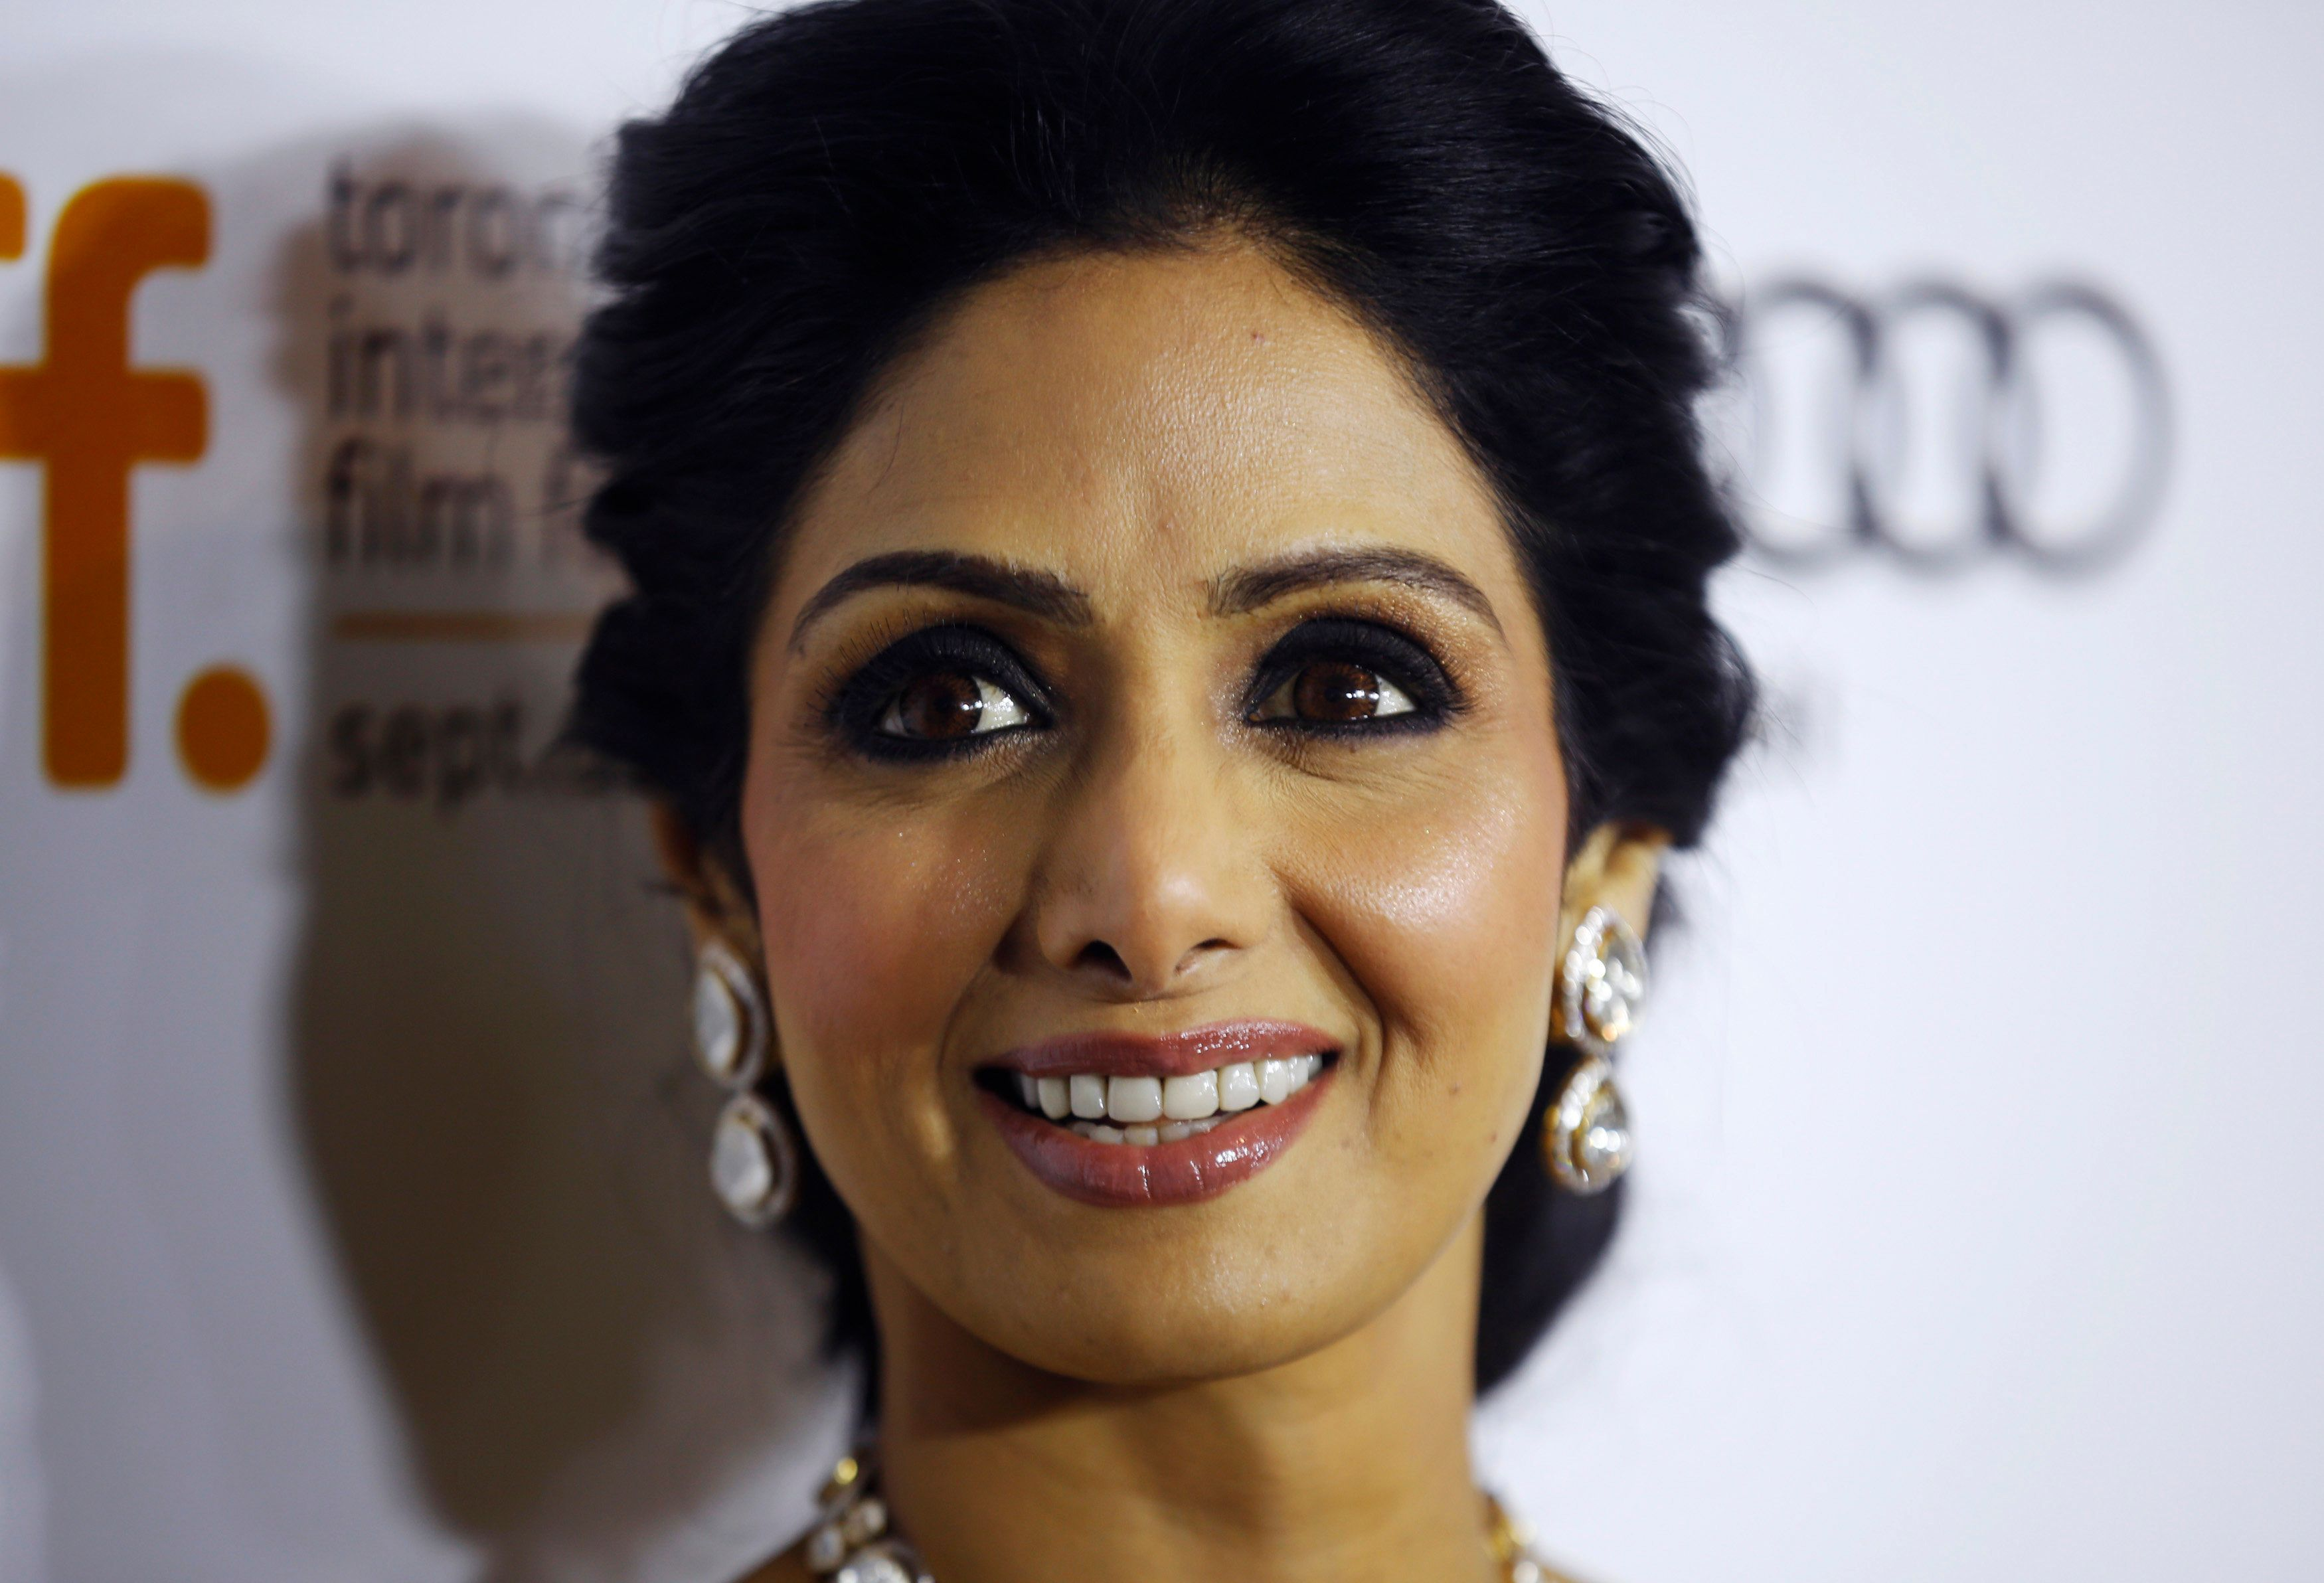 """Actress Sridevi Kapoor arrives for the gala presentation of """"English Vinglish"""" at the 37th Toronto International Film Festival, September 14, 2012. REUTERS/Mark Blinch (CANADA - Tags: ENTERTAINMENT)"""